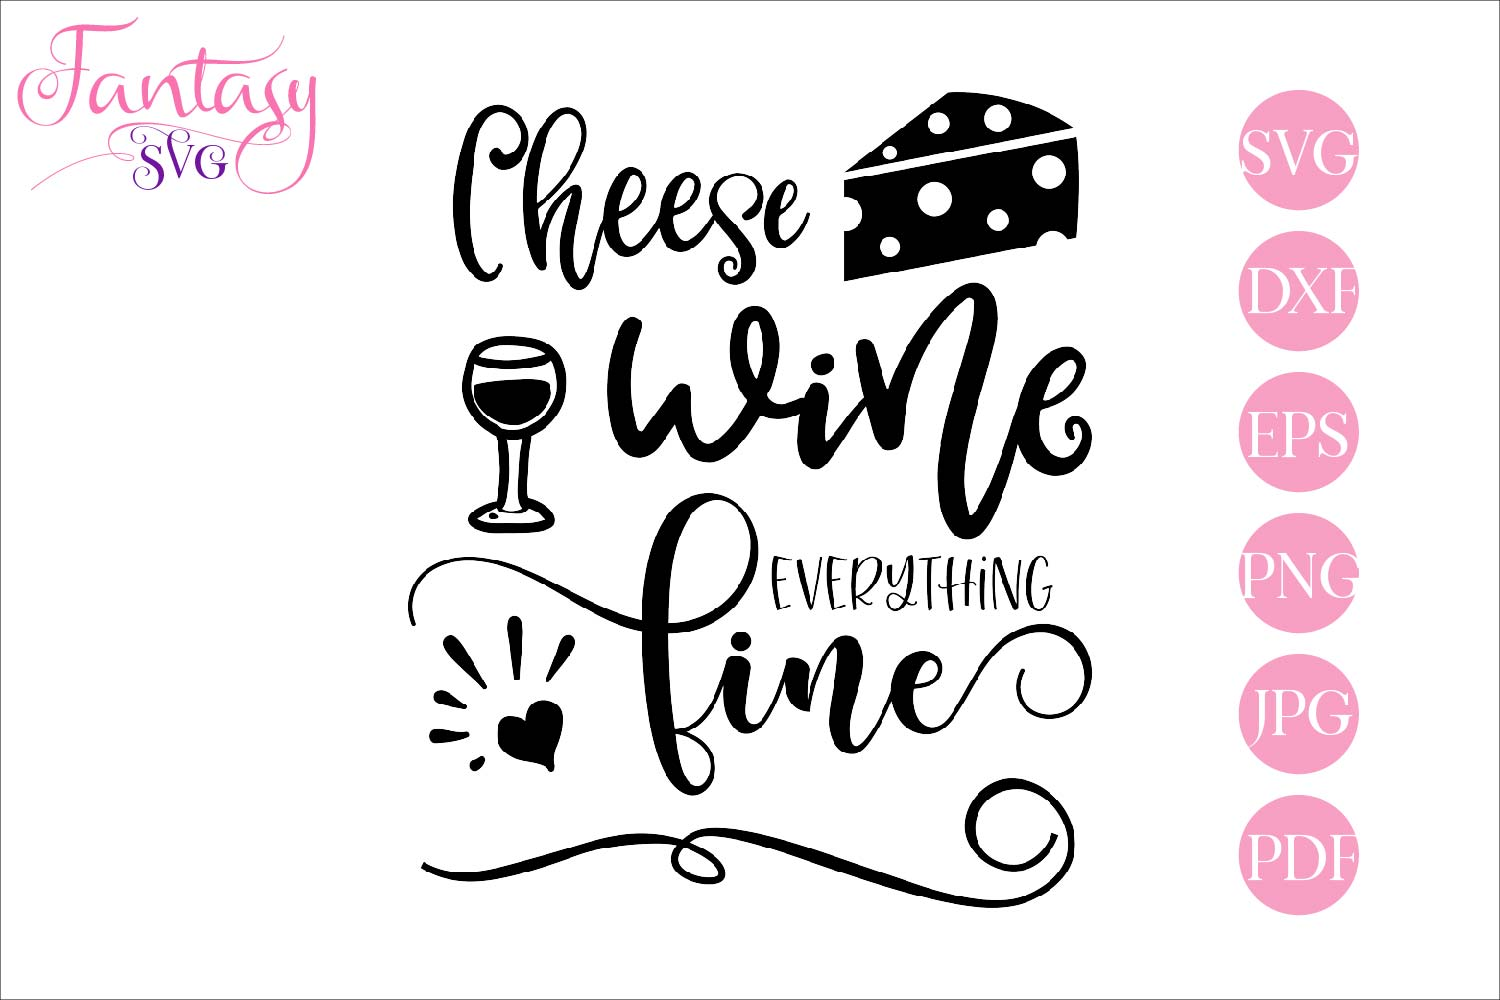 Cheese wine everything fine - svg cut file example image 1